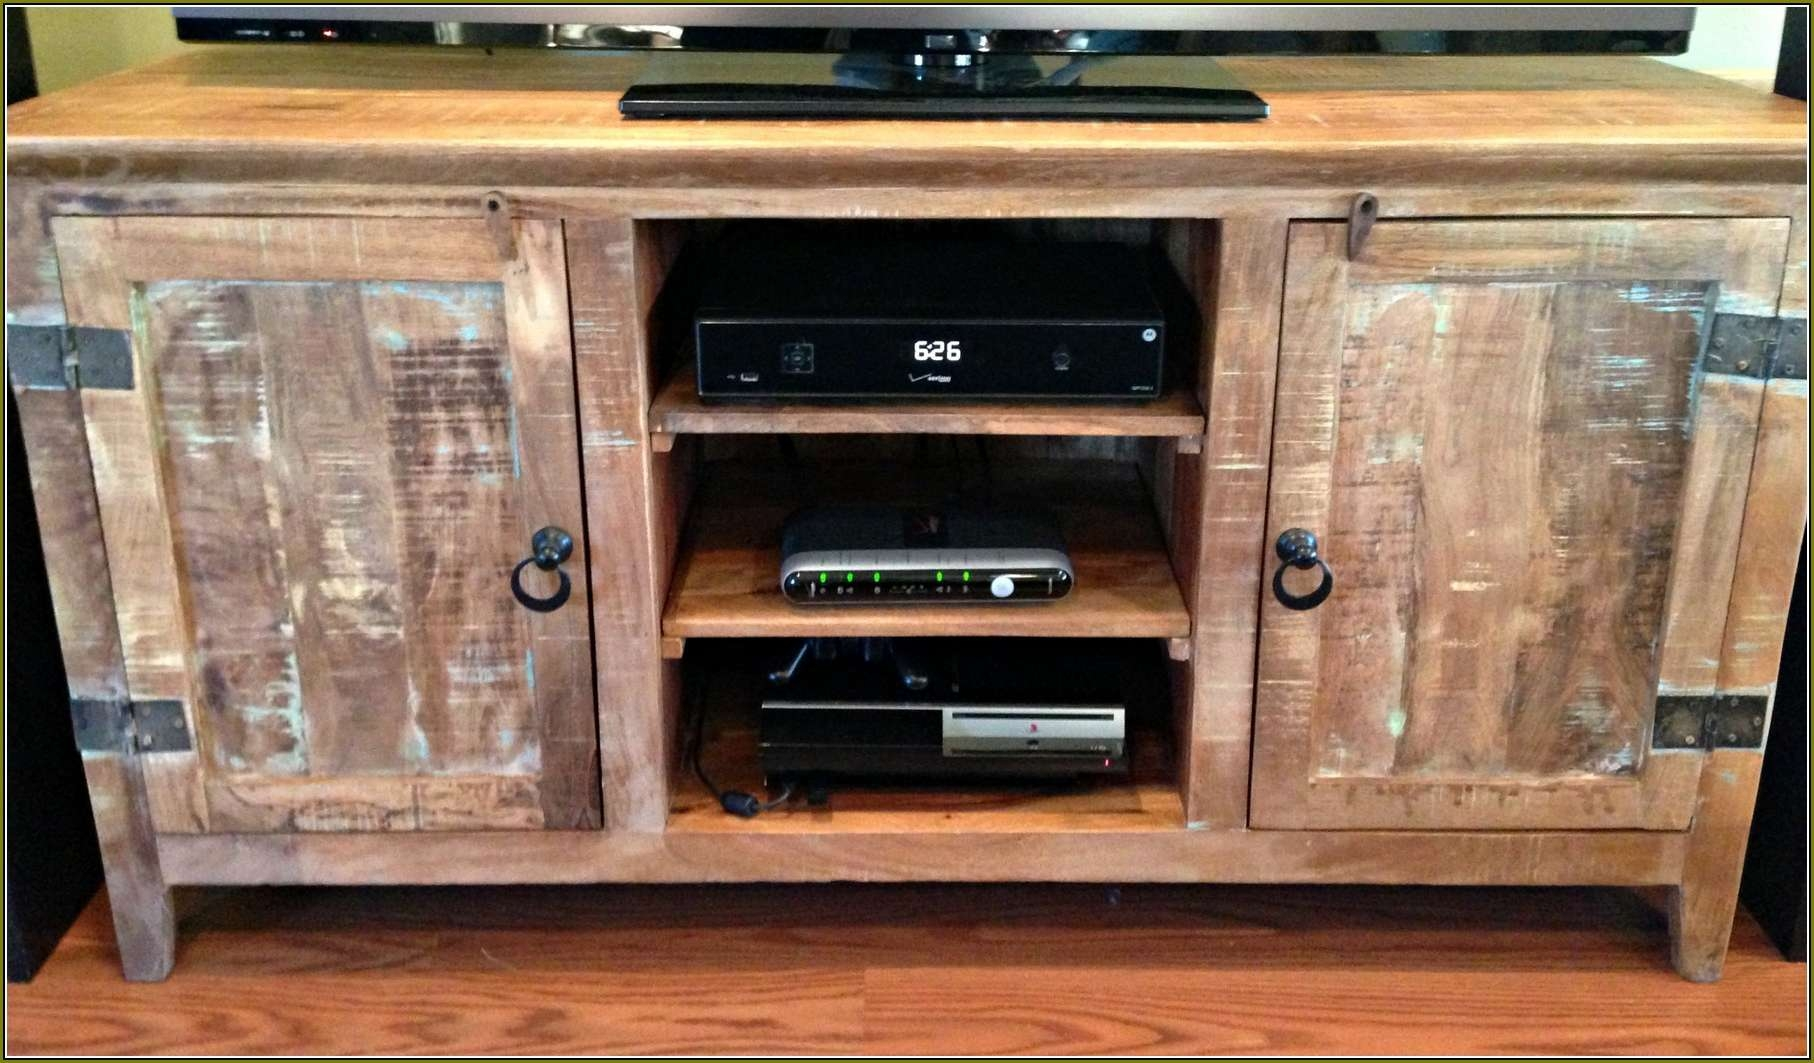 Sleek Doors Home Furniture Ideas Along With Doors Cabinet Image Throughout Wall Mounted Tv Cabinets For Flat Screens With Doors (View 16 of 20)